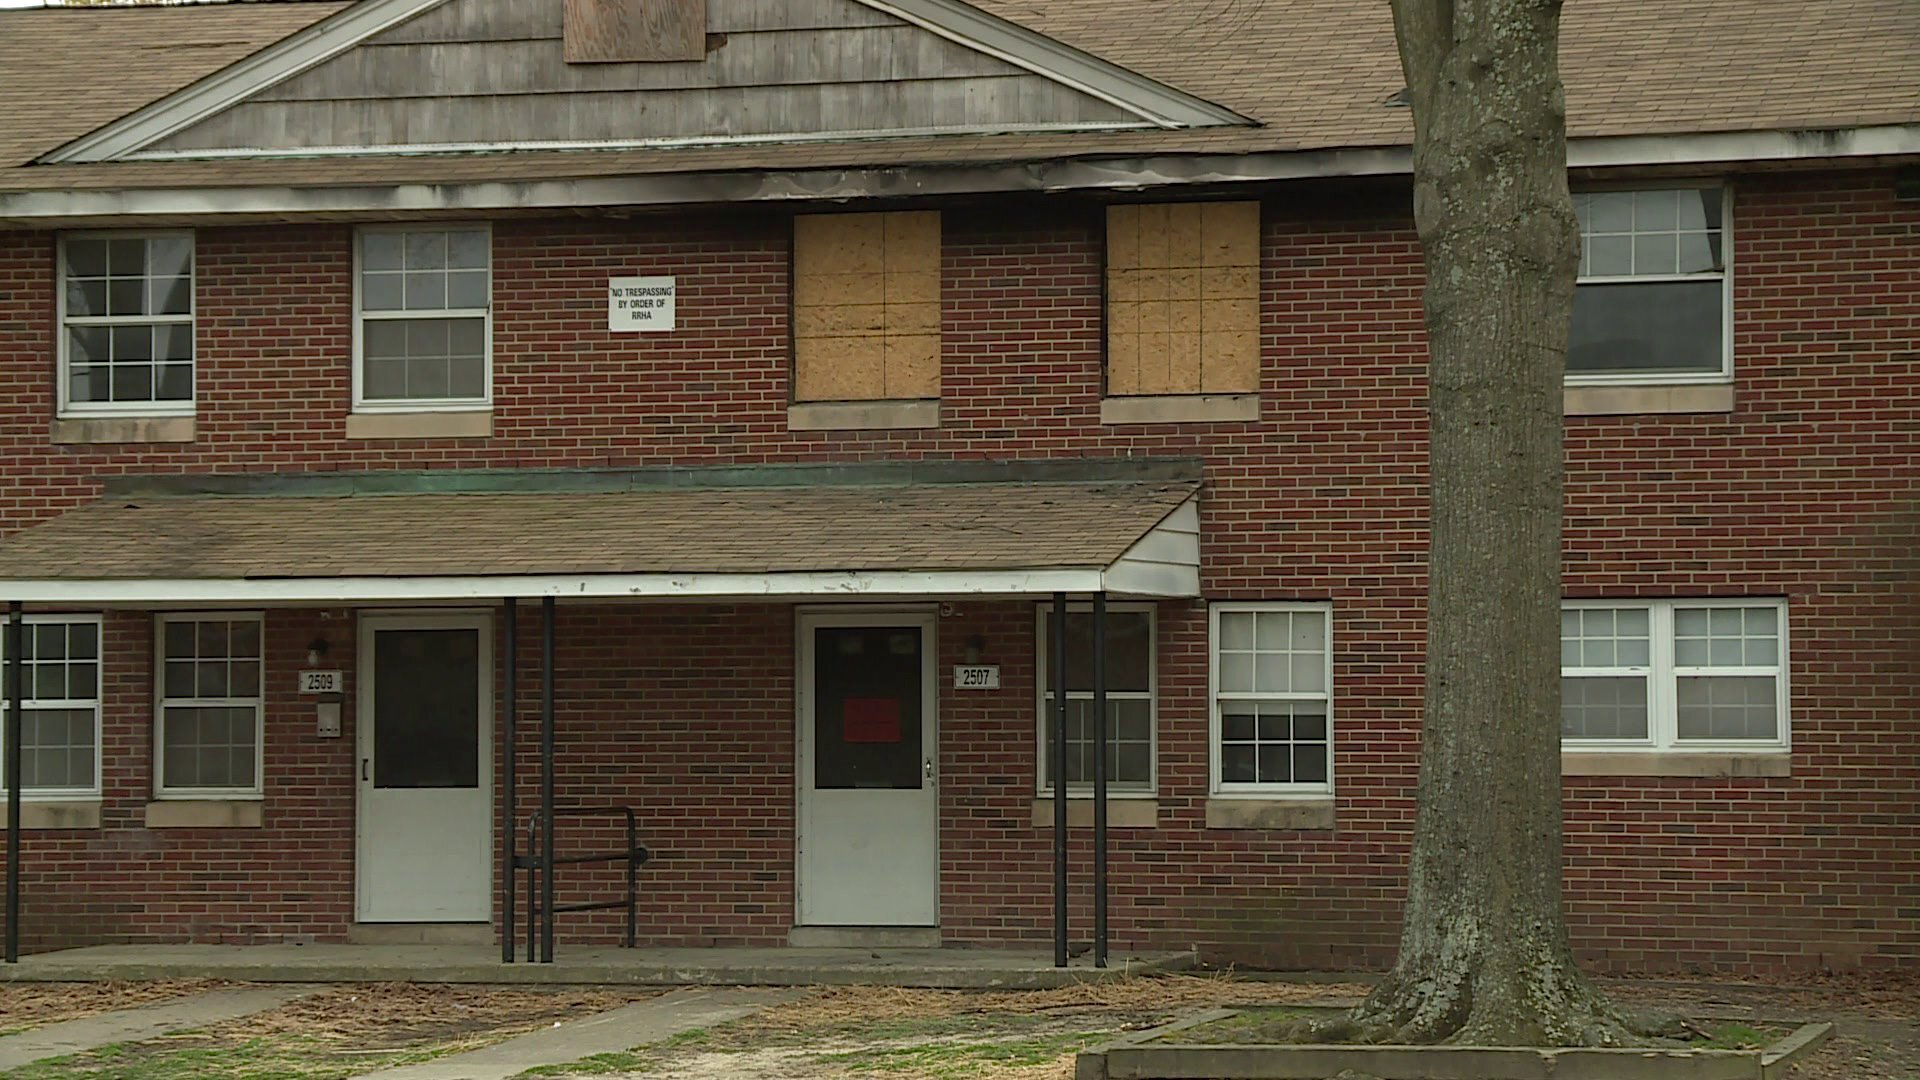 Photos: The history of Richmond's housingprojects